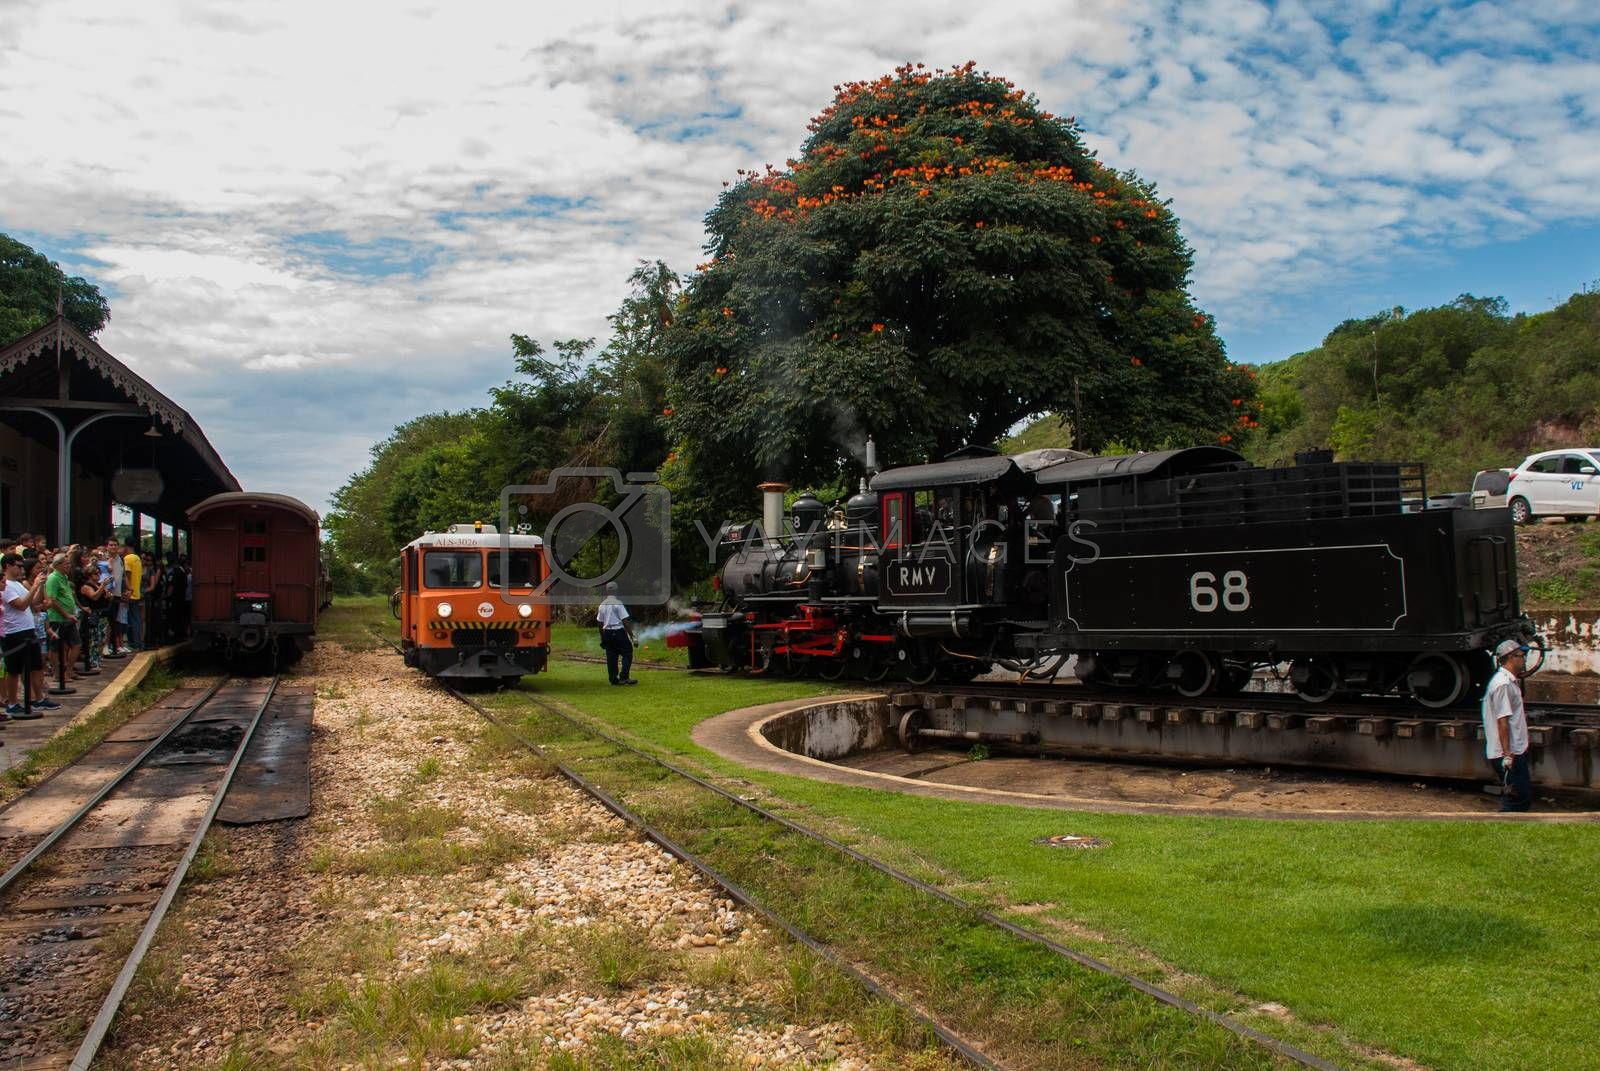 TIRADENTES, MINAS GERAIS, BRAZIL - April 2019: an old train that goes between cities for tourists.